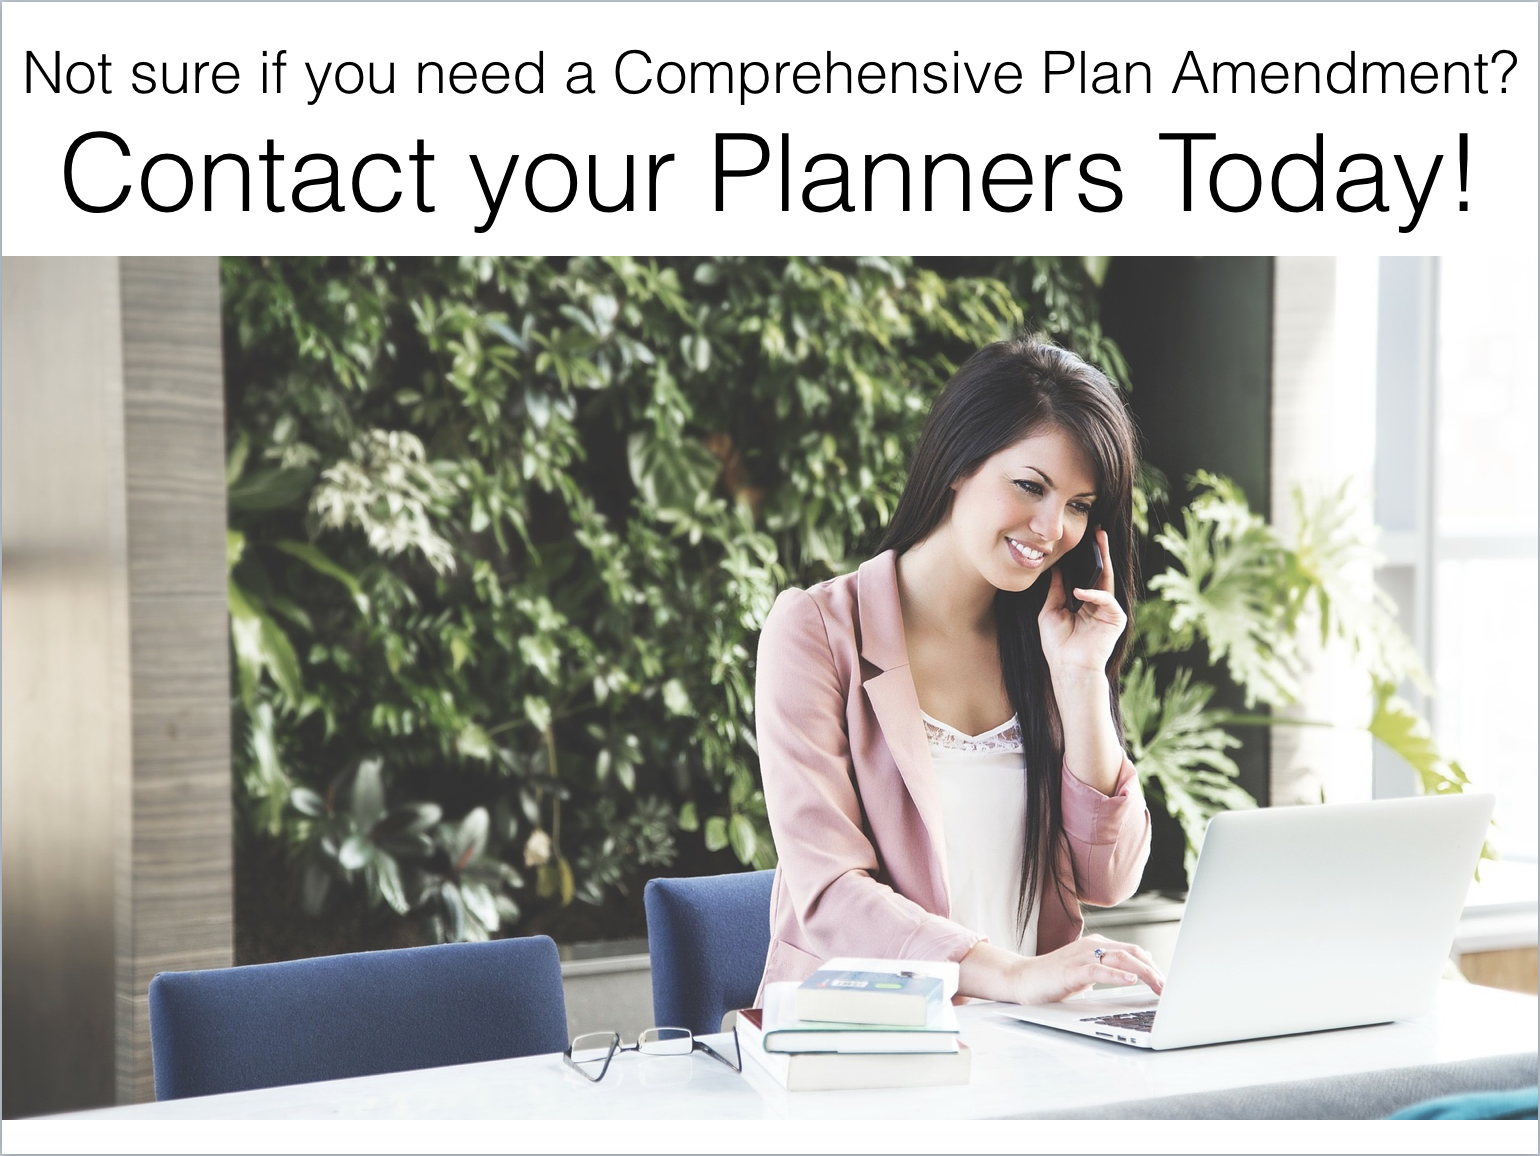 Not sure if you need a Comprehensive Plan Amendment? Contact your Planners Today!